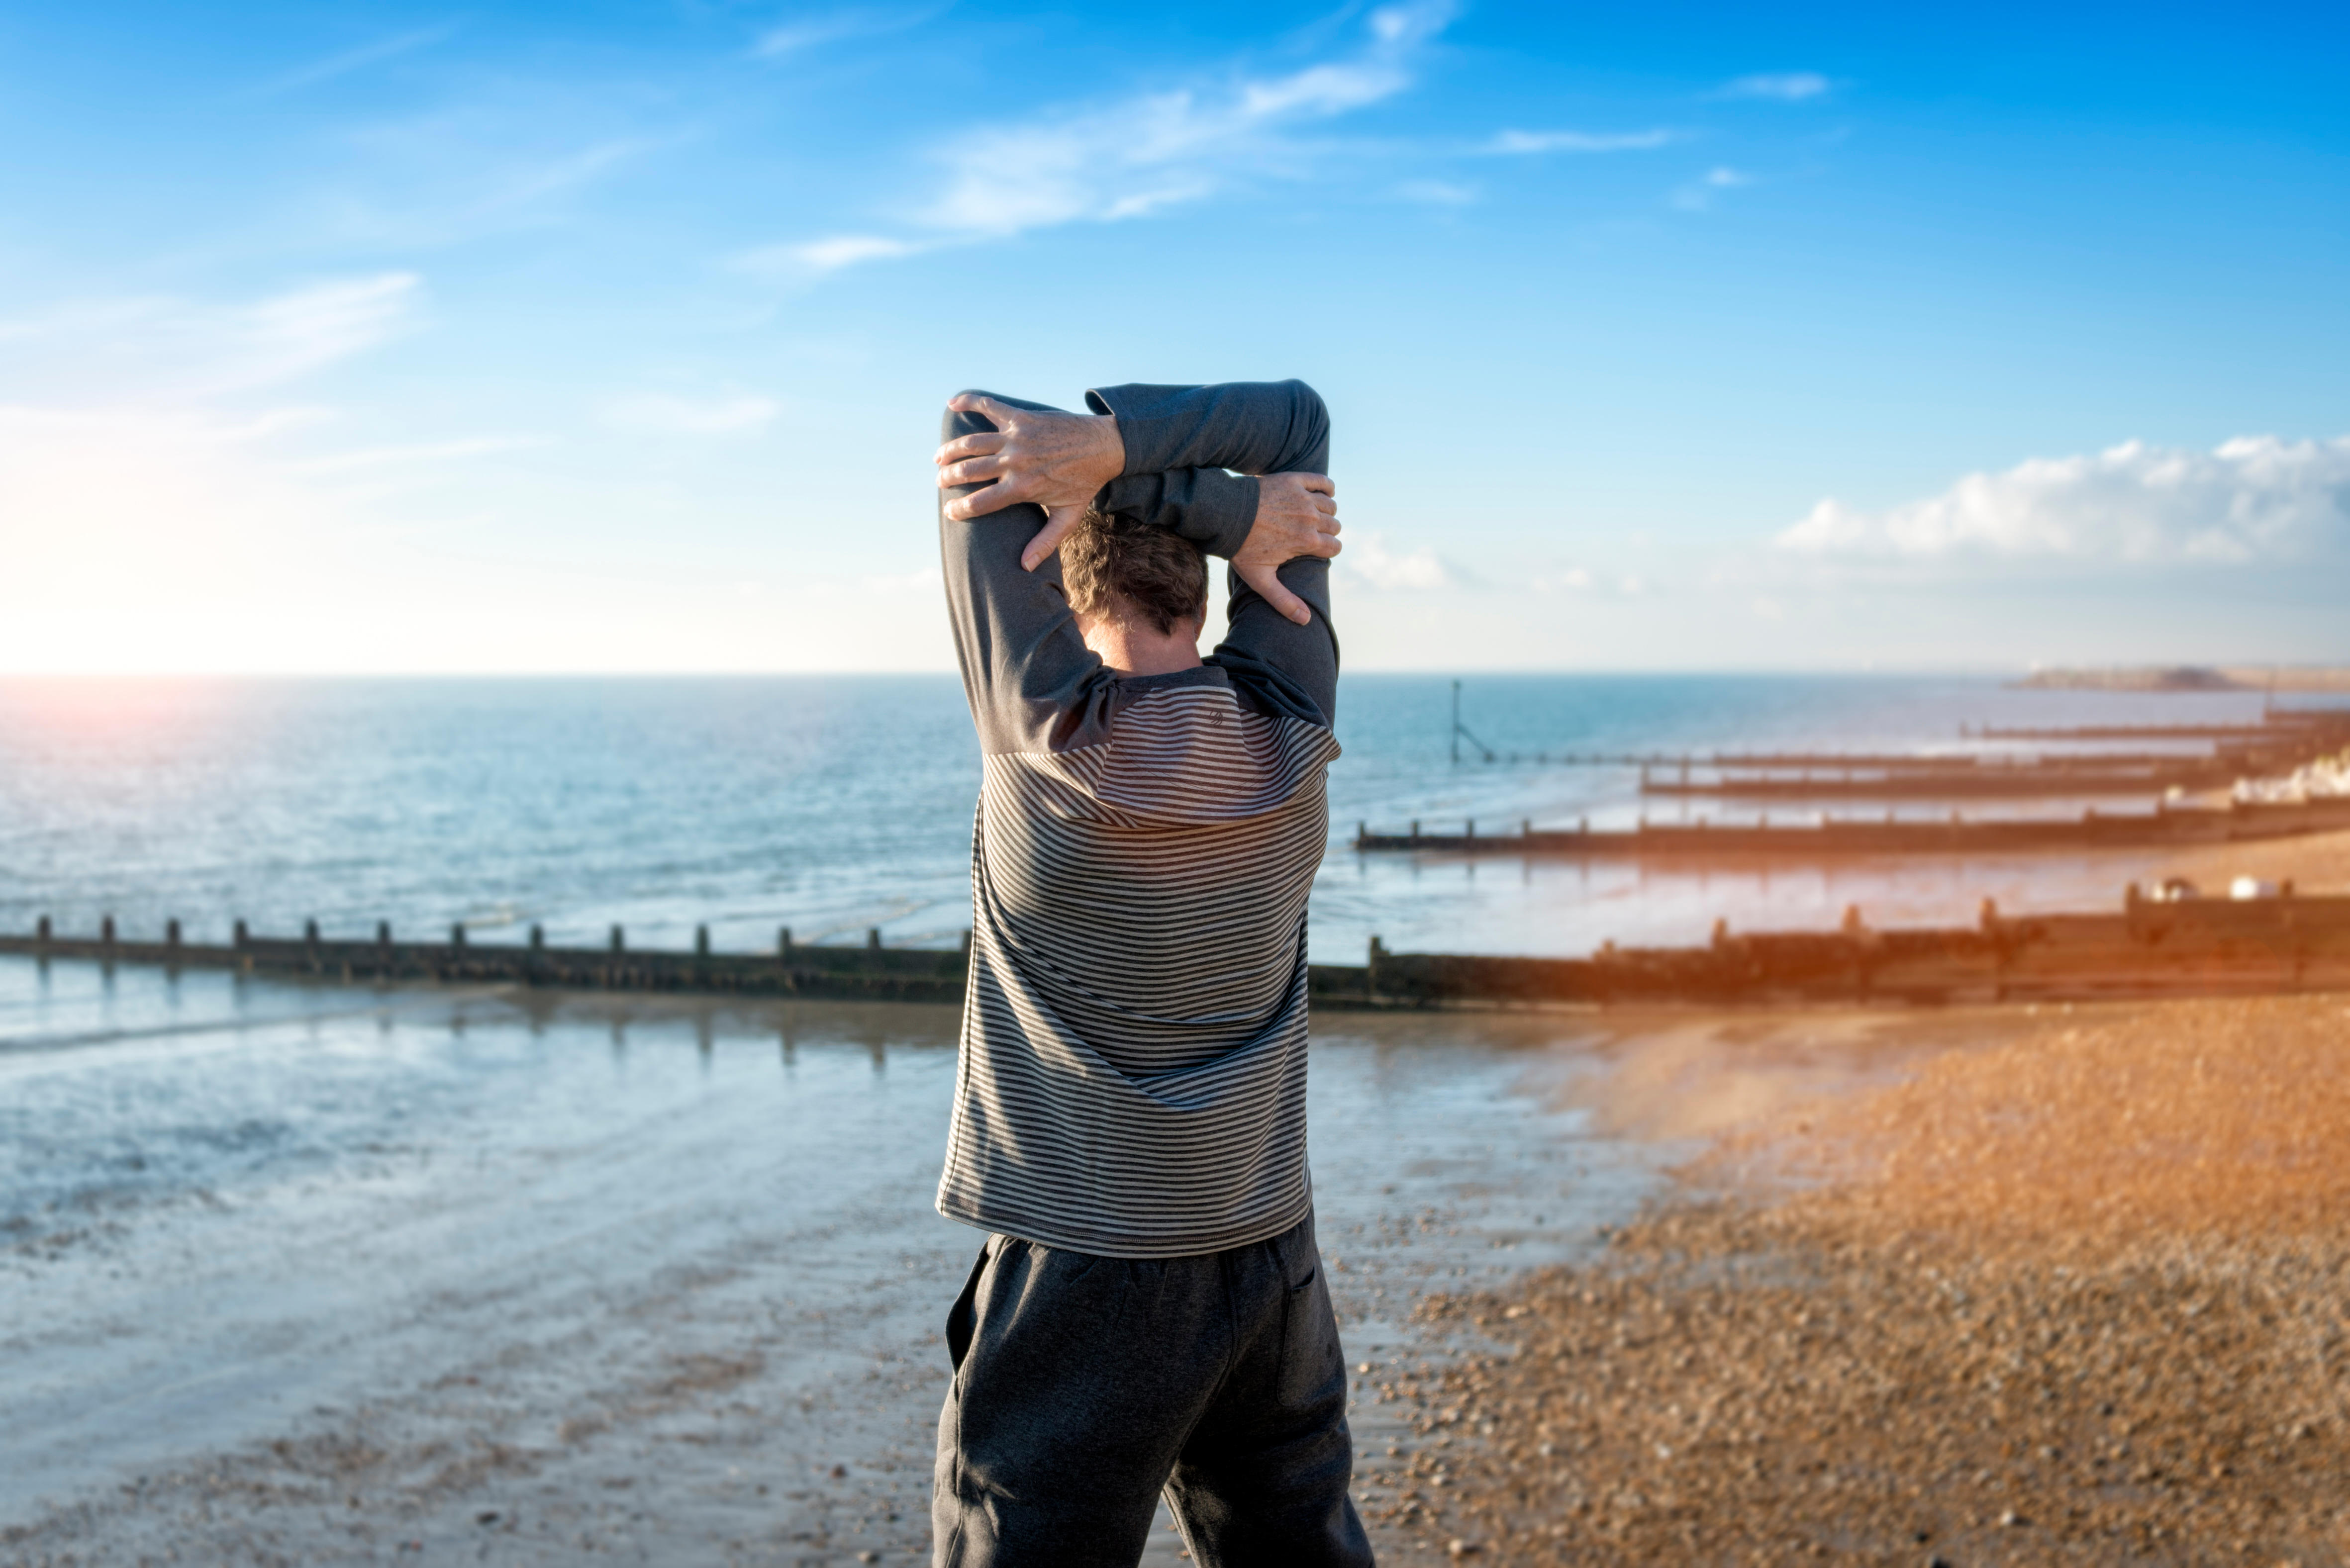 man stretching by the sea, warming up before exercise training.